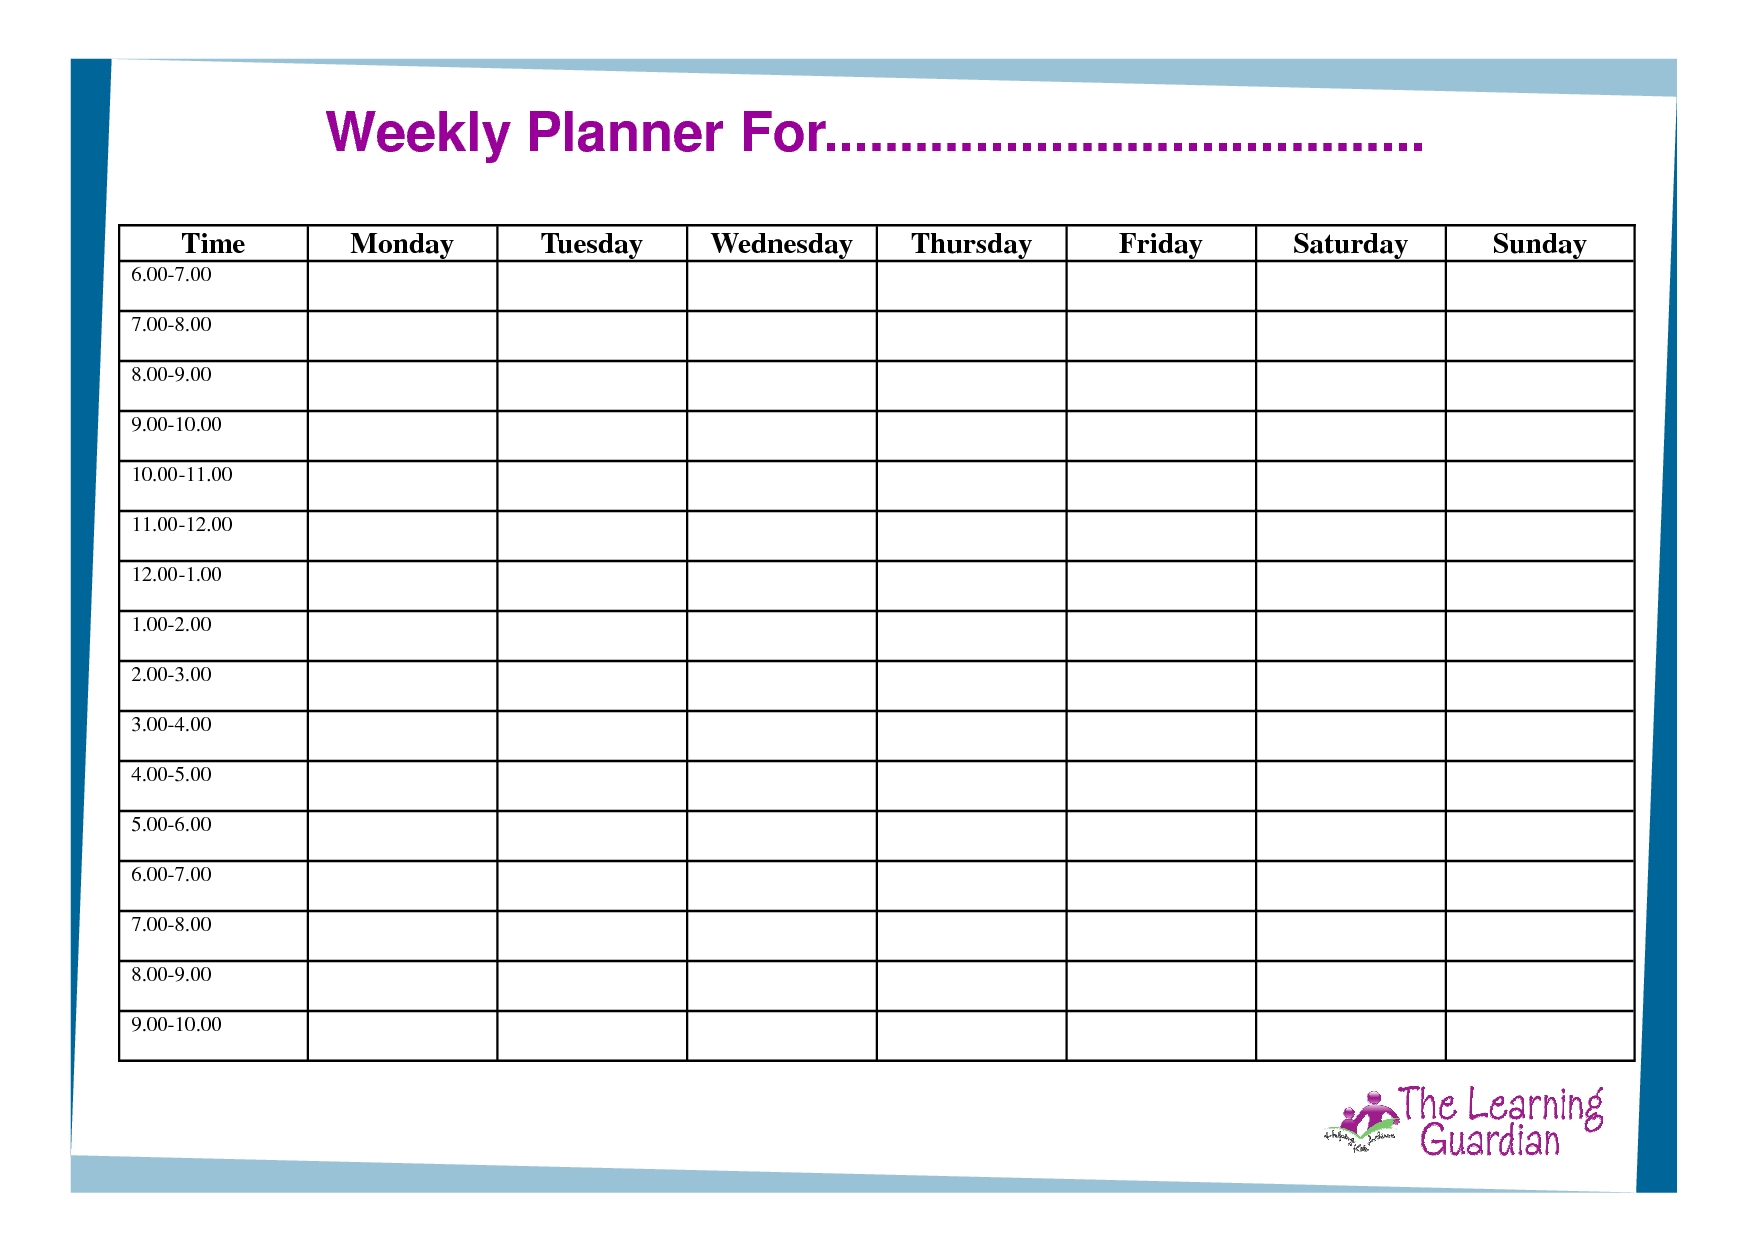 Free Printable Weekly Calendar Templates | Weekly Planner-Weekly Calendar Template Monday To Friday